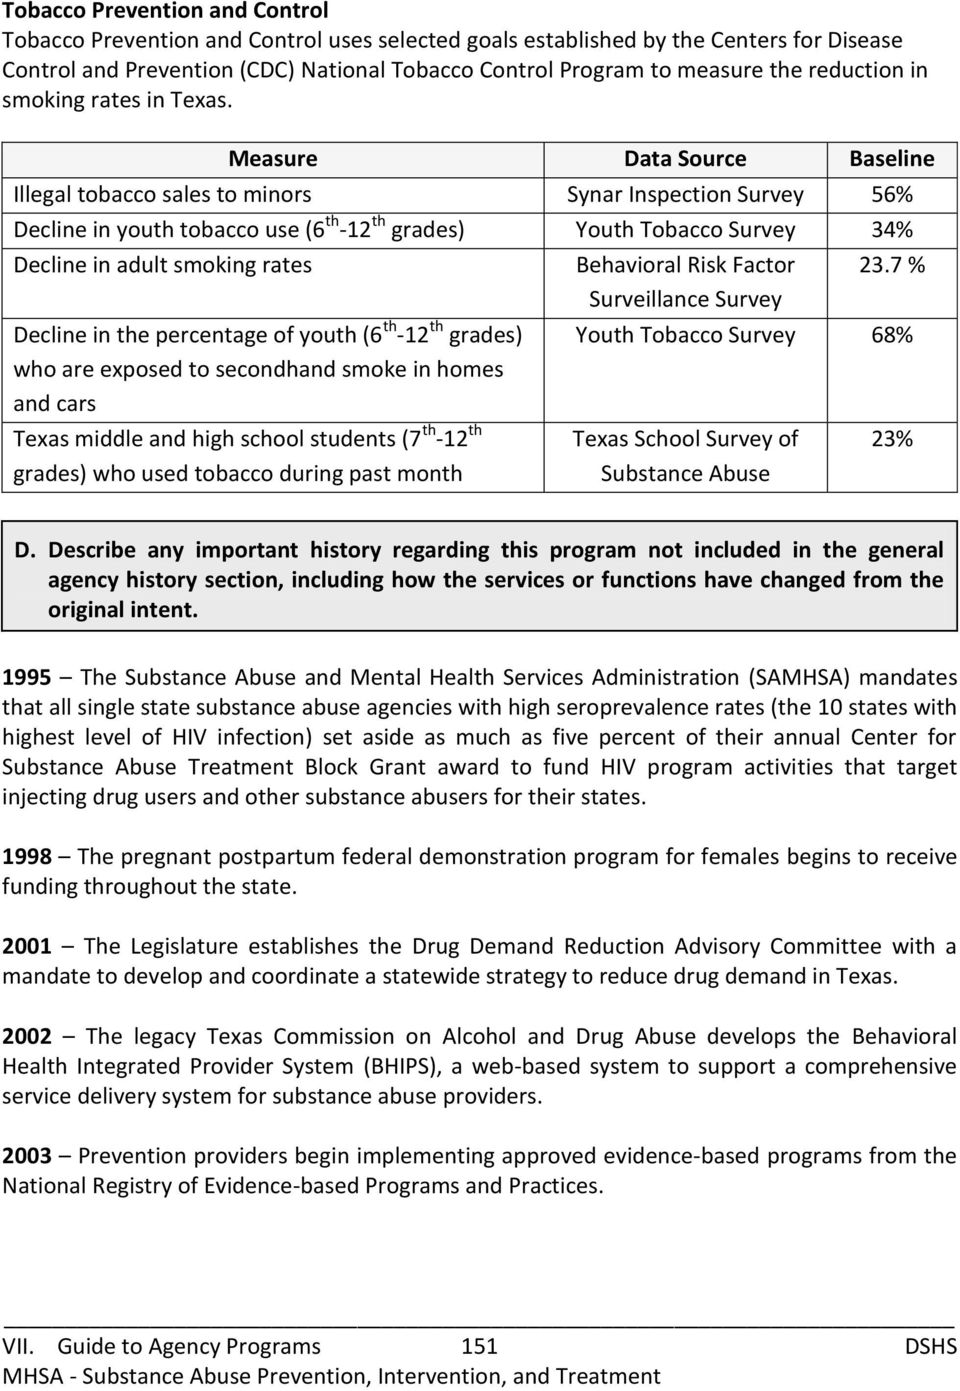 Measure Data Source Baseline Illegal tobacco sales to minors Synar Inspection Survey 56% Decline in youth tobacco use (6 th -12 th grades) Youth Tobacco Survey 34% Decline in adult smoking rates